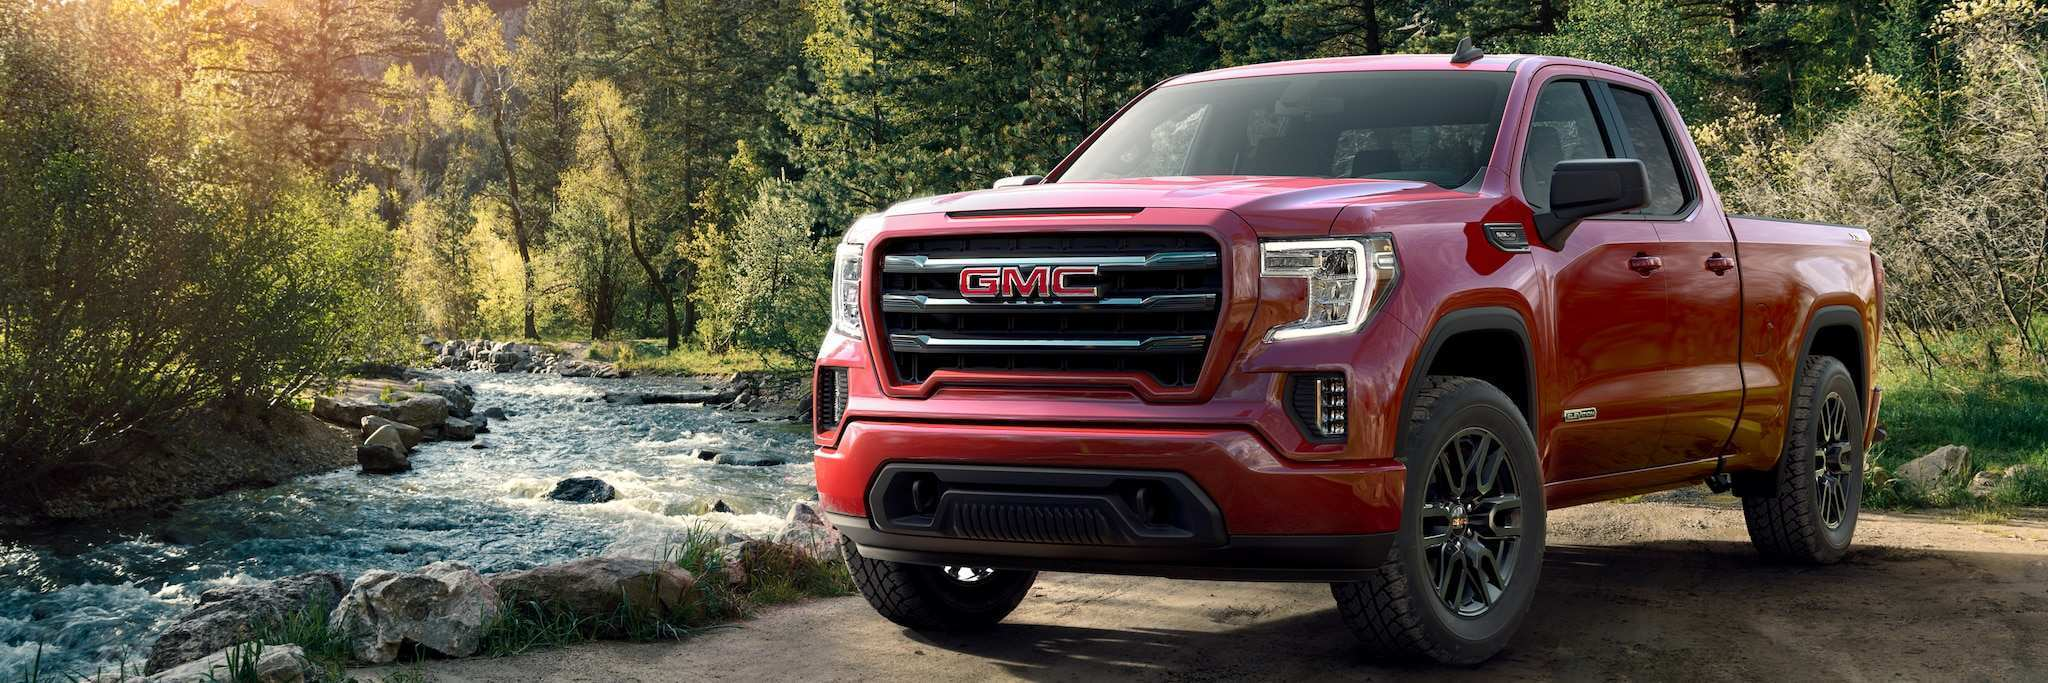 15 A 2019 Gmc Engine Options Research New